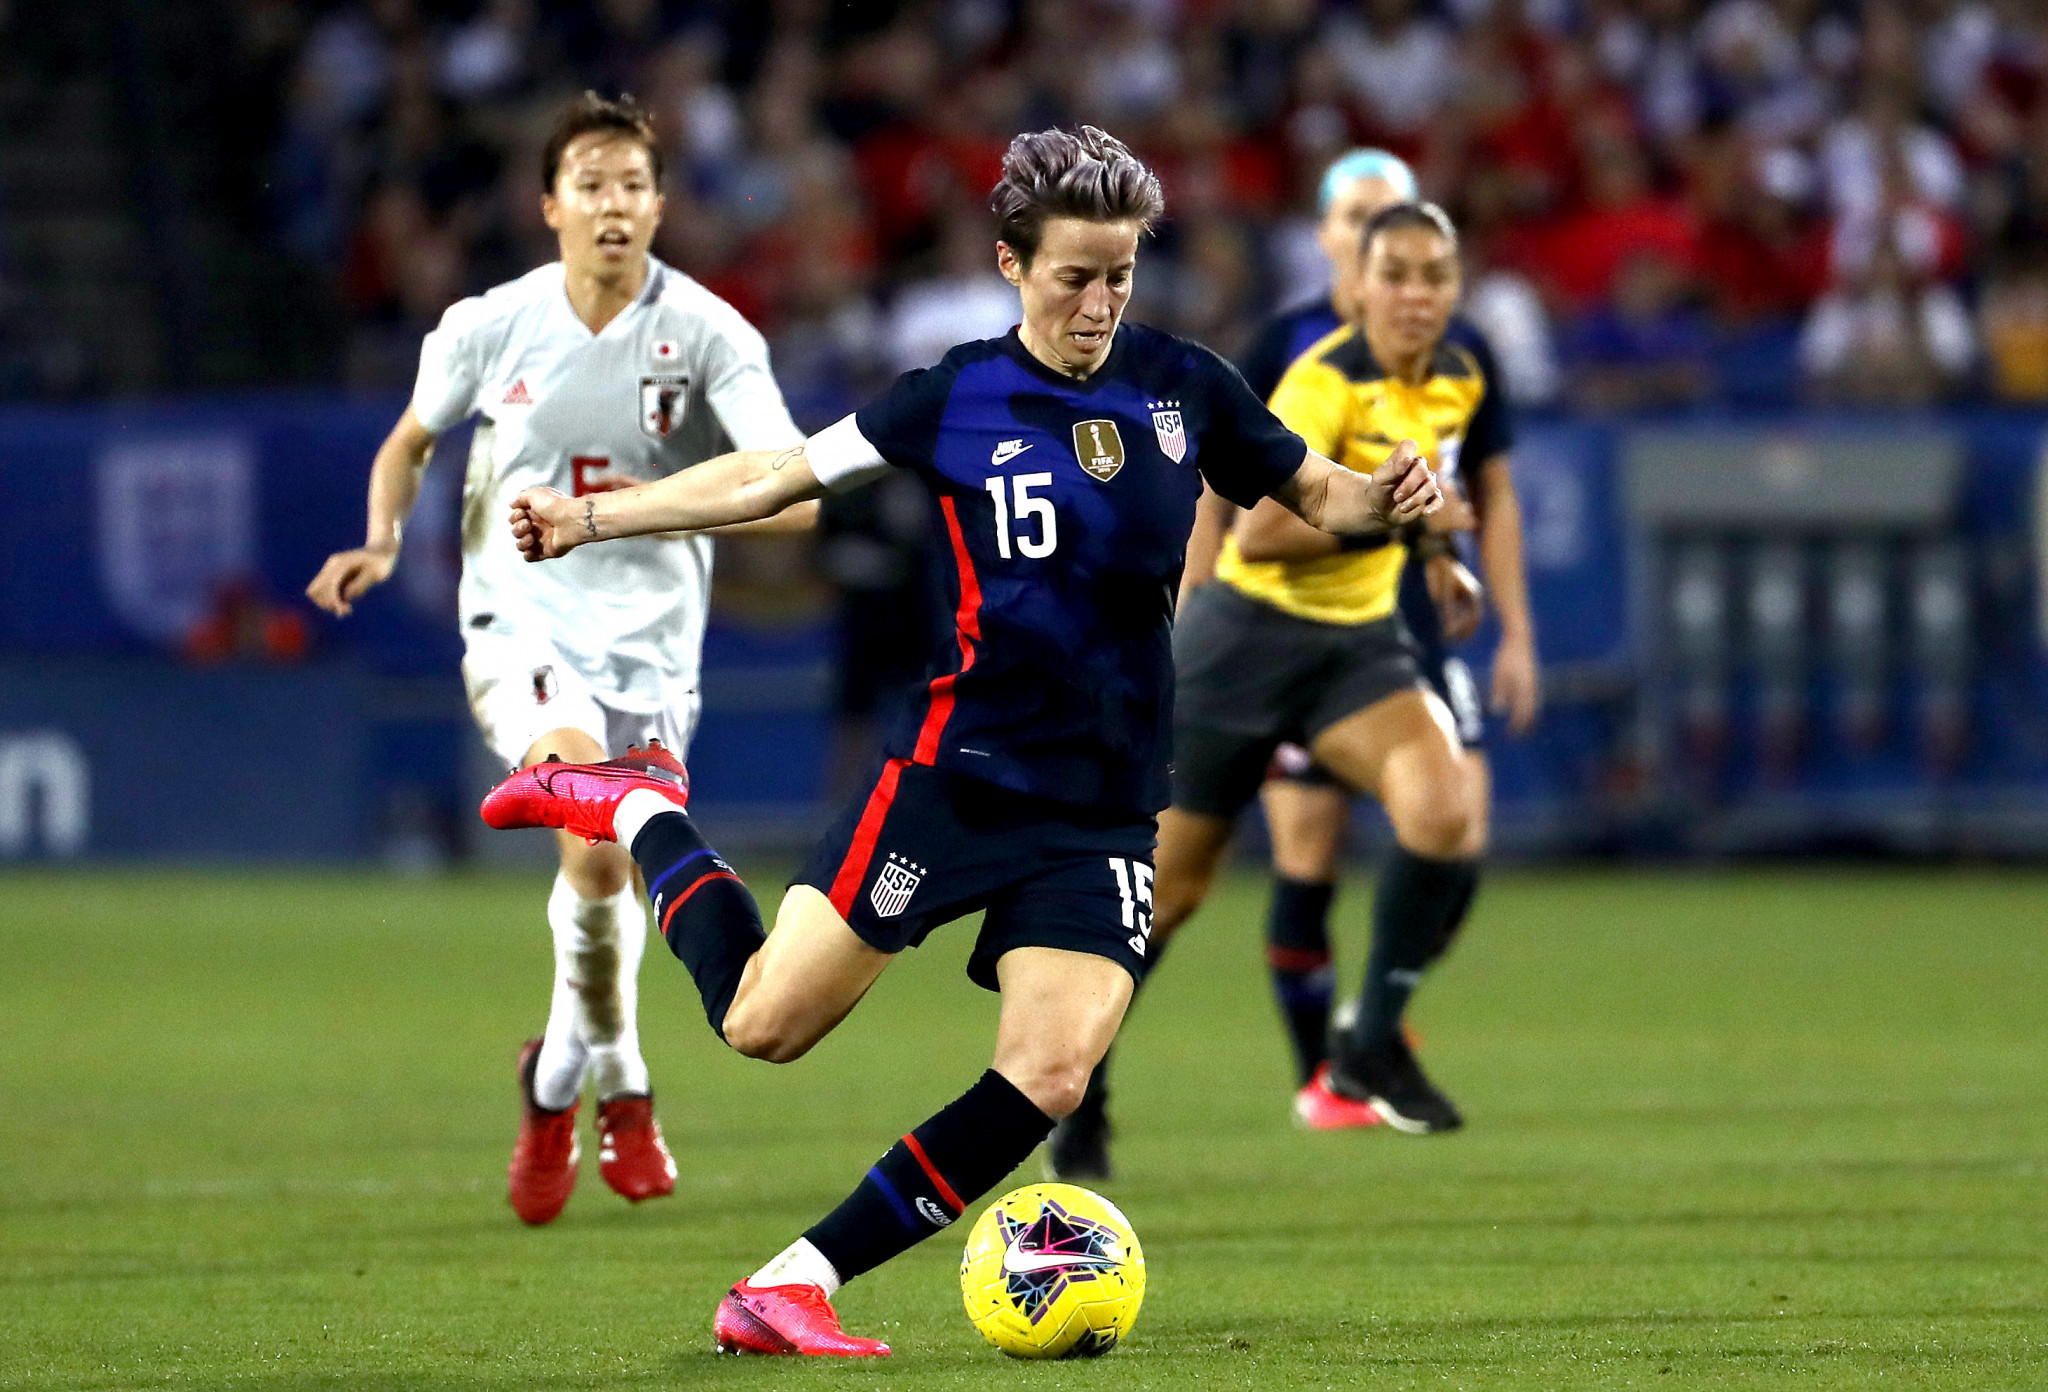 Megan Rapinoe expects Tokyo 2020 to be her last Olympics should the Games go ahead in 2021 ©Getty Images